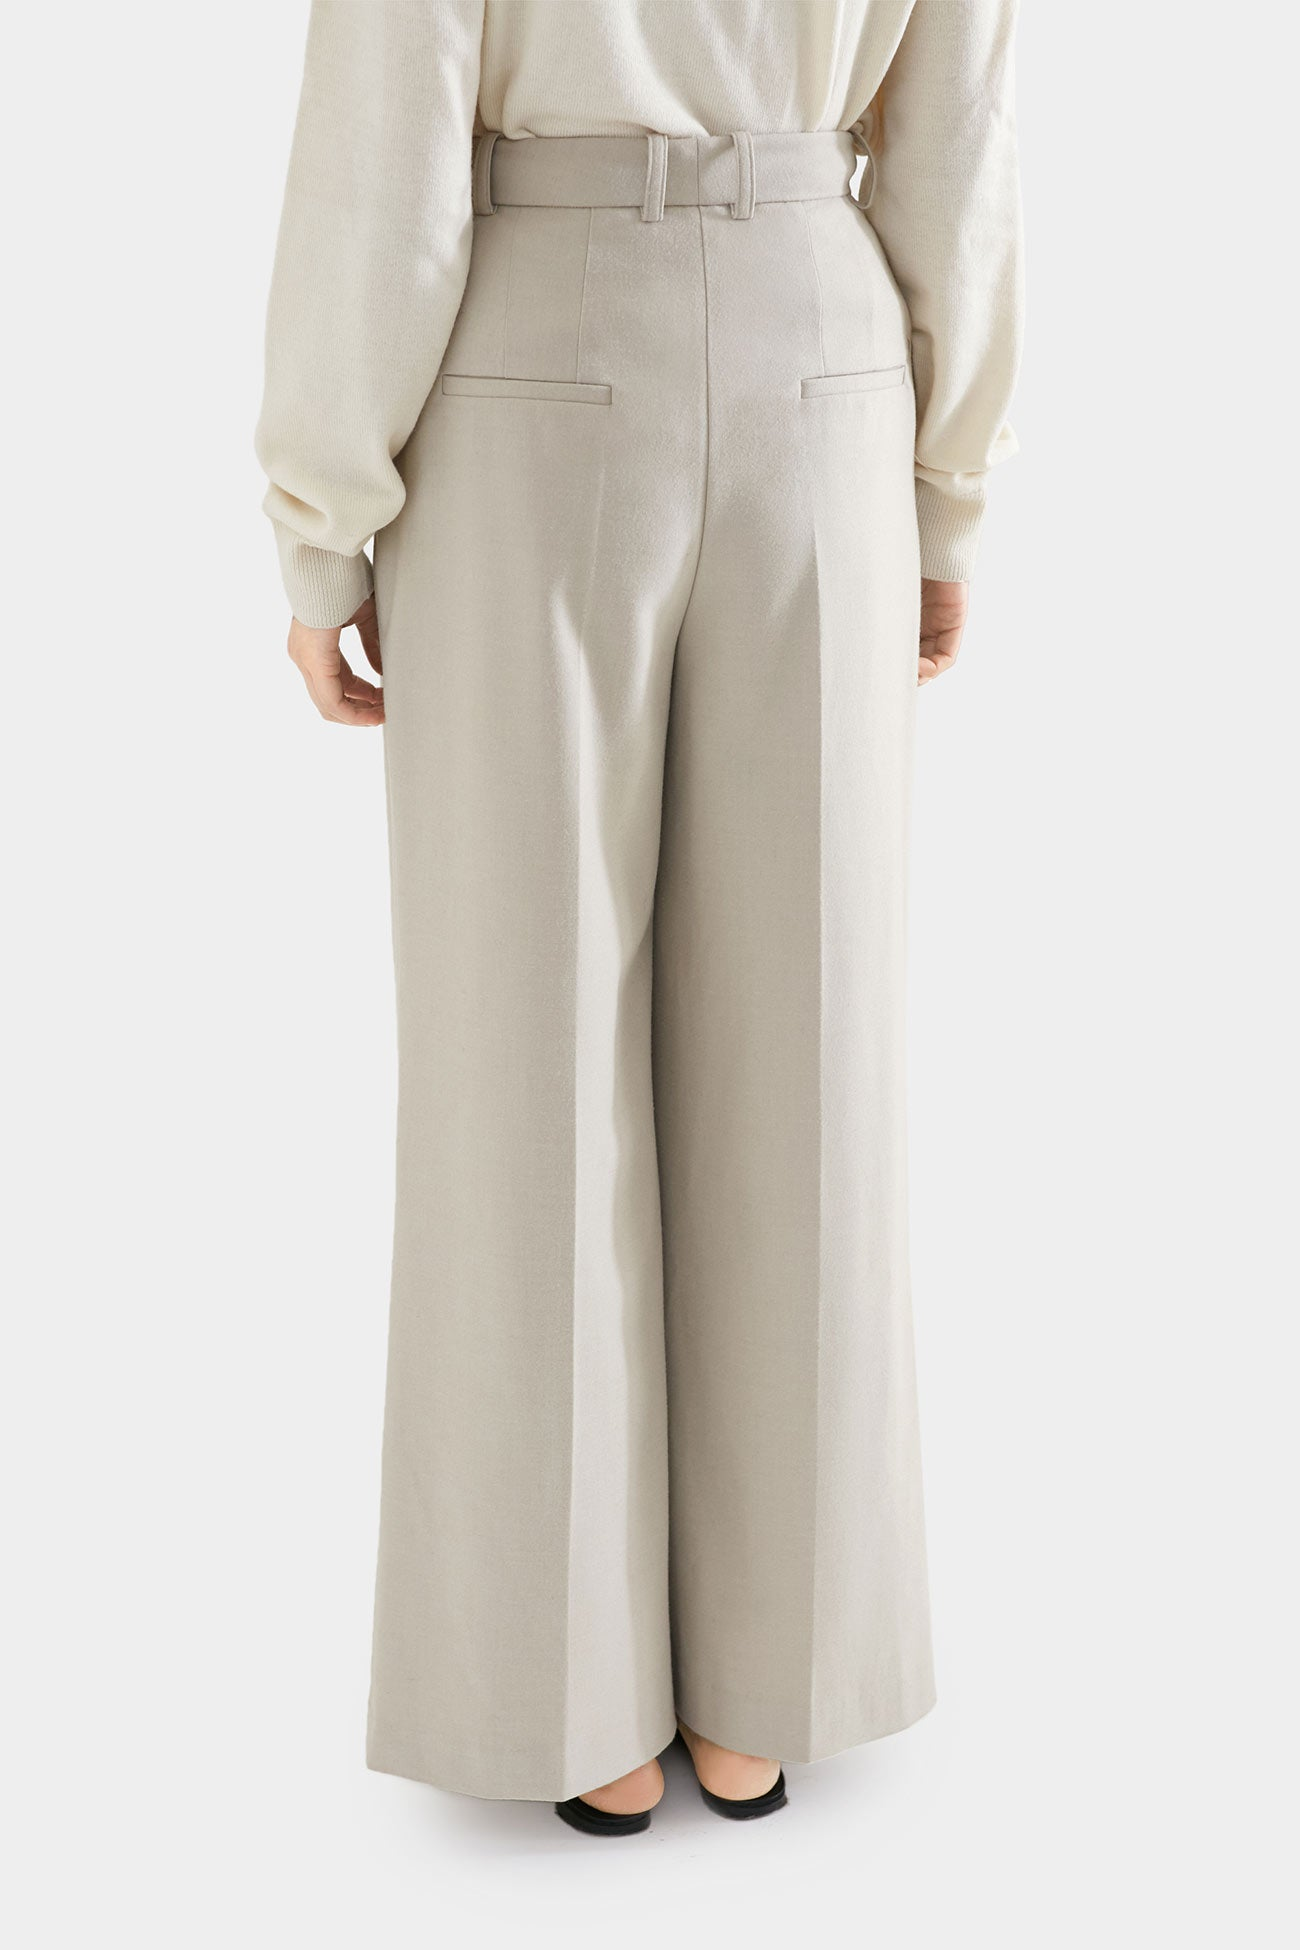 OATMEAL EDDIE LONG WIDE PANTS